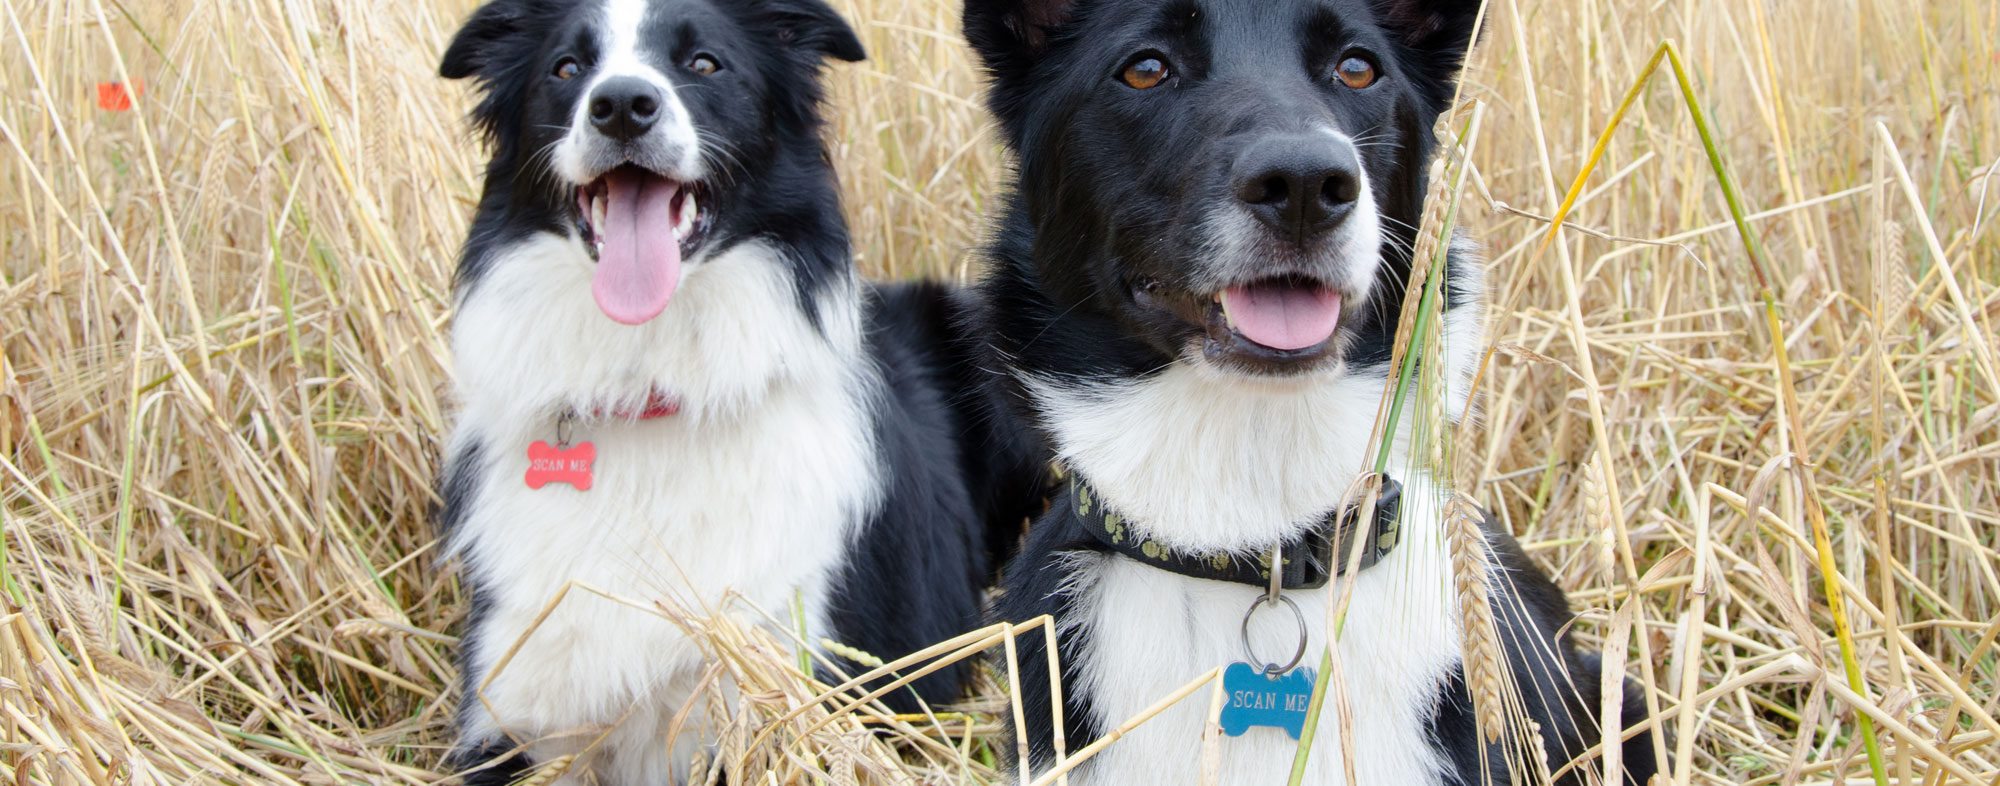 Securing an ID for your pets, it'll be easier to locate them